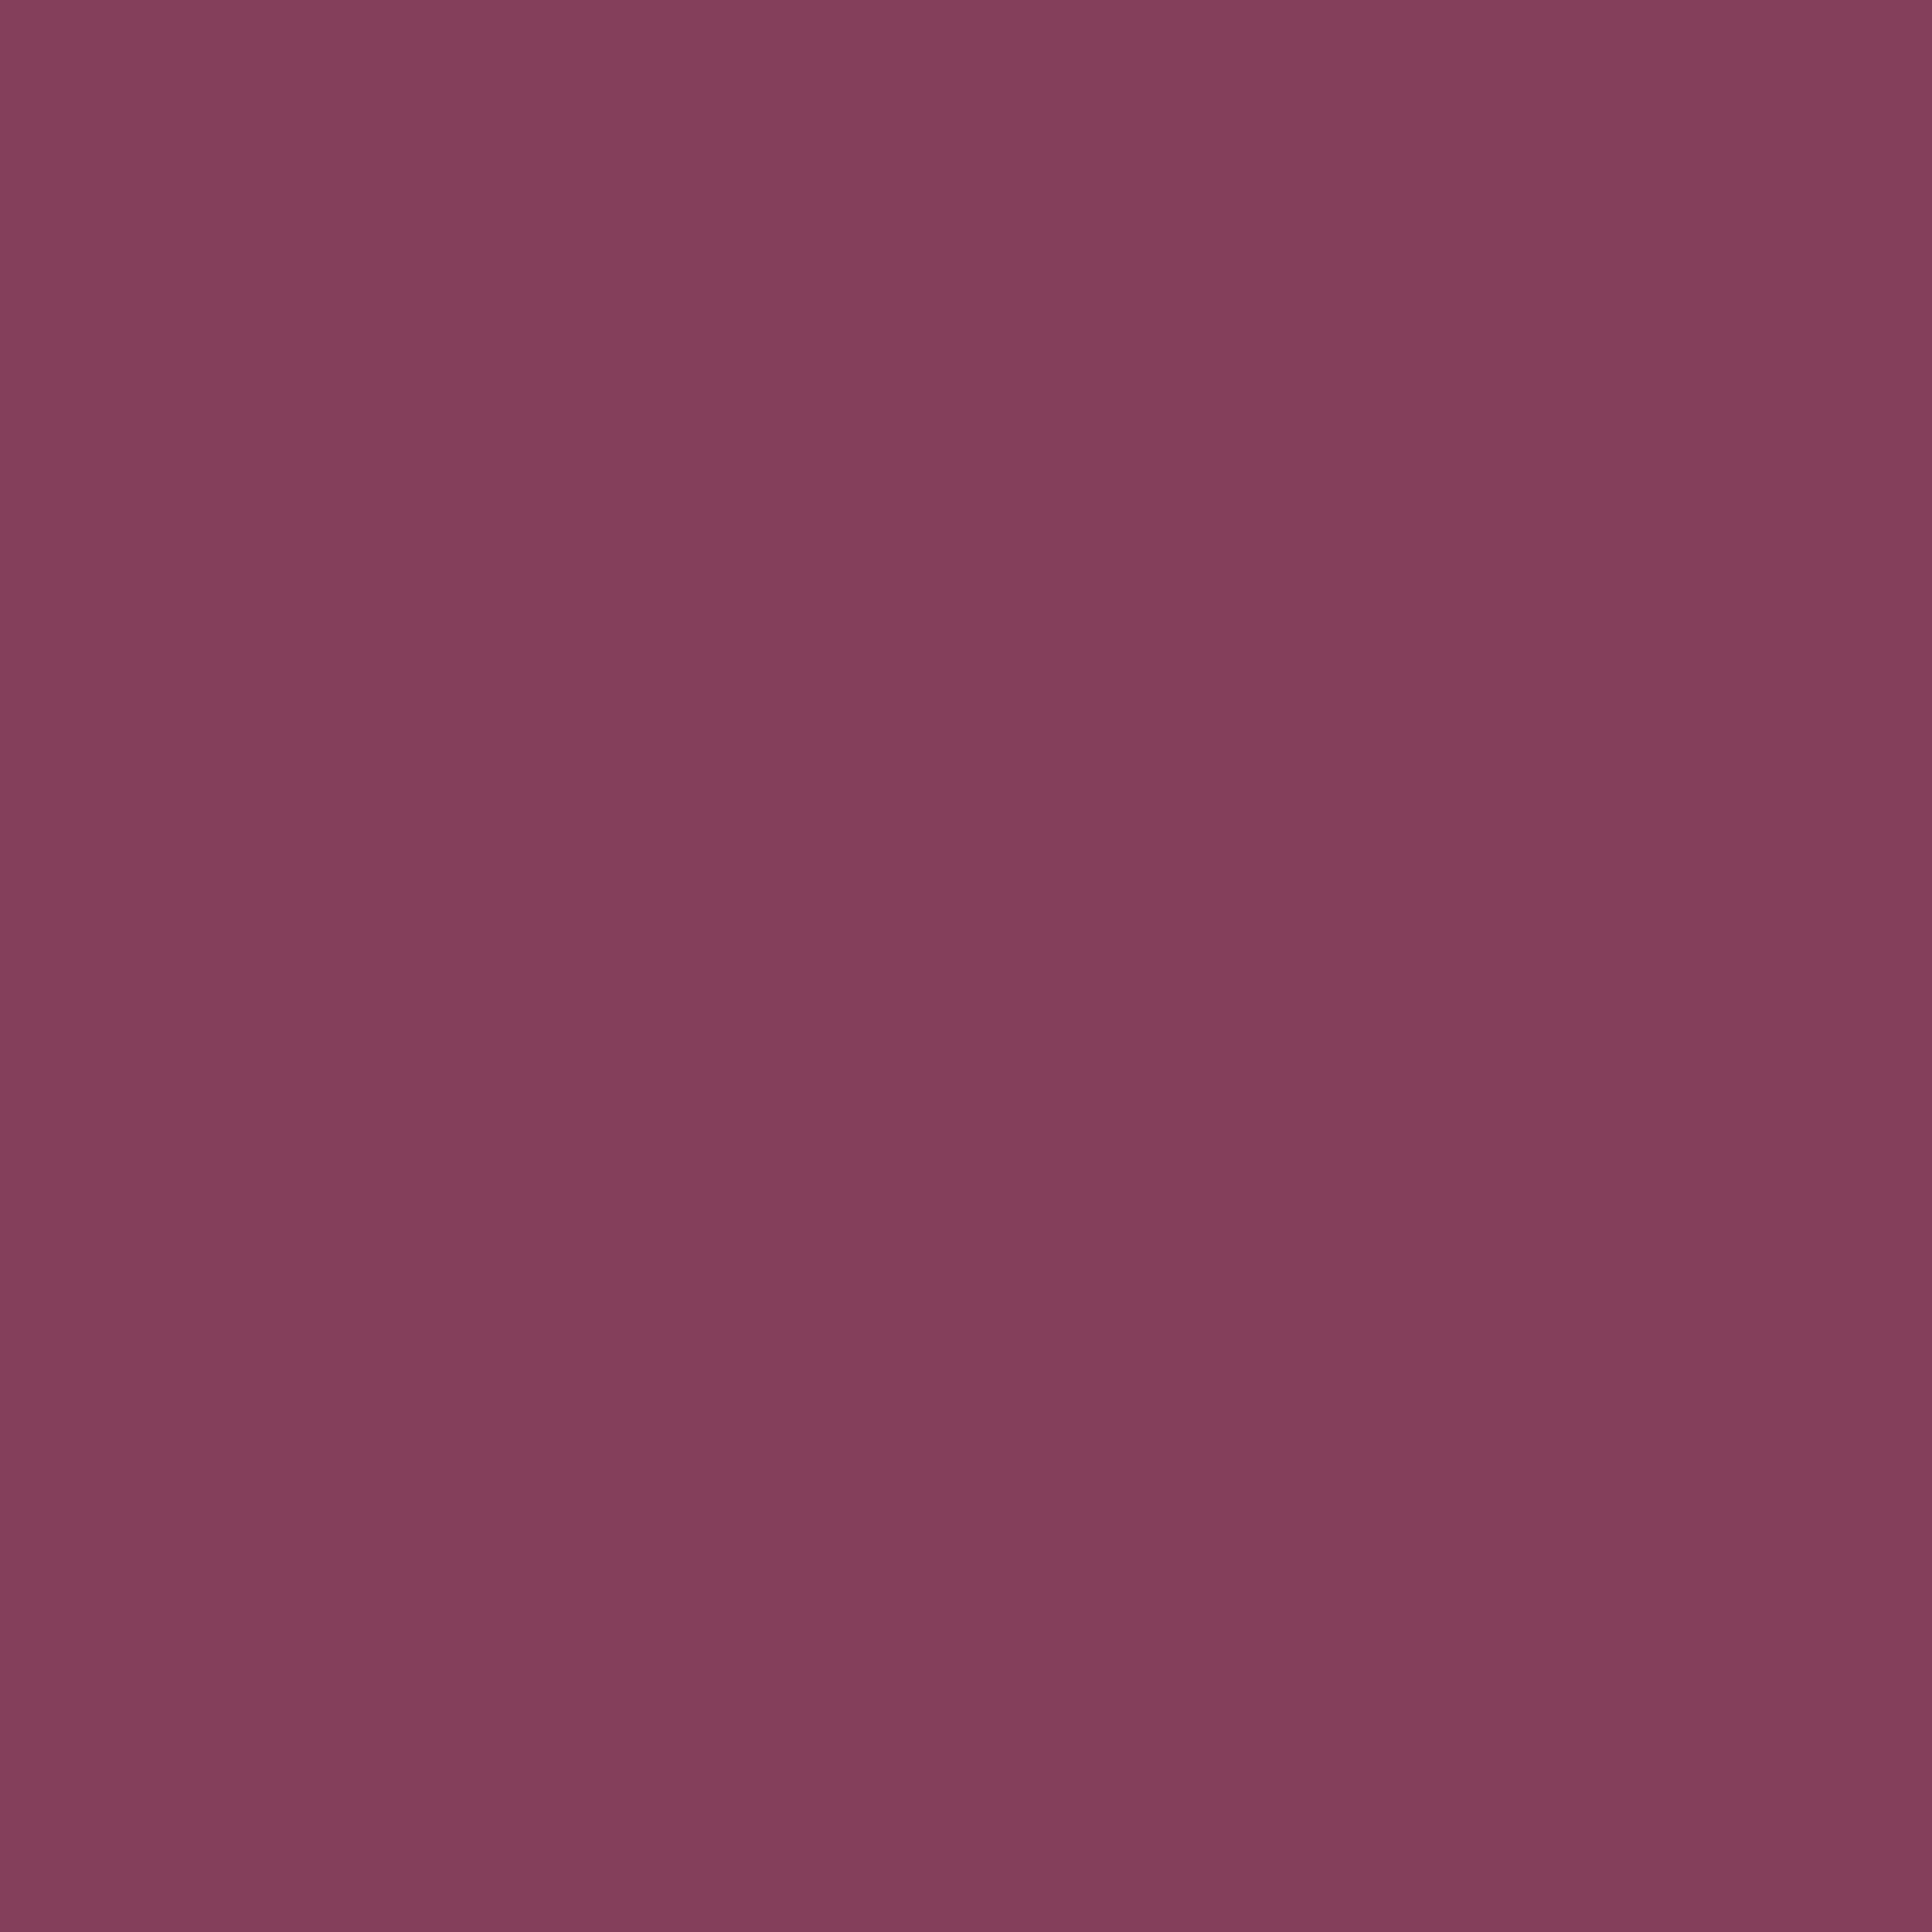 3600x3600 Deep Ruby Solid Color Background